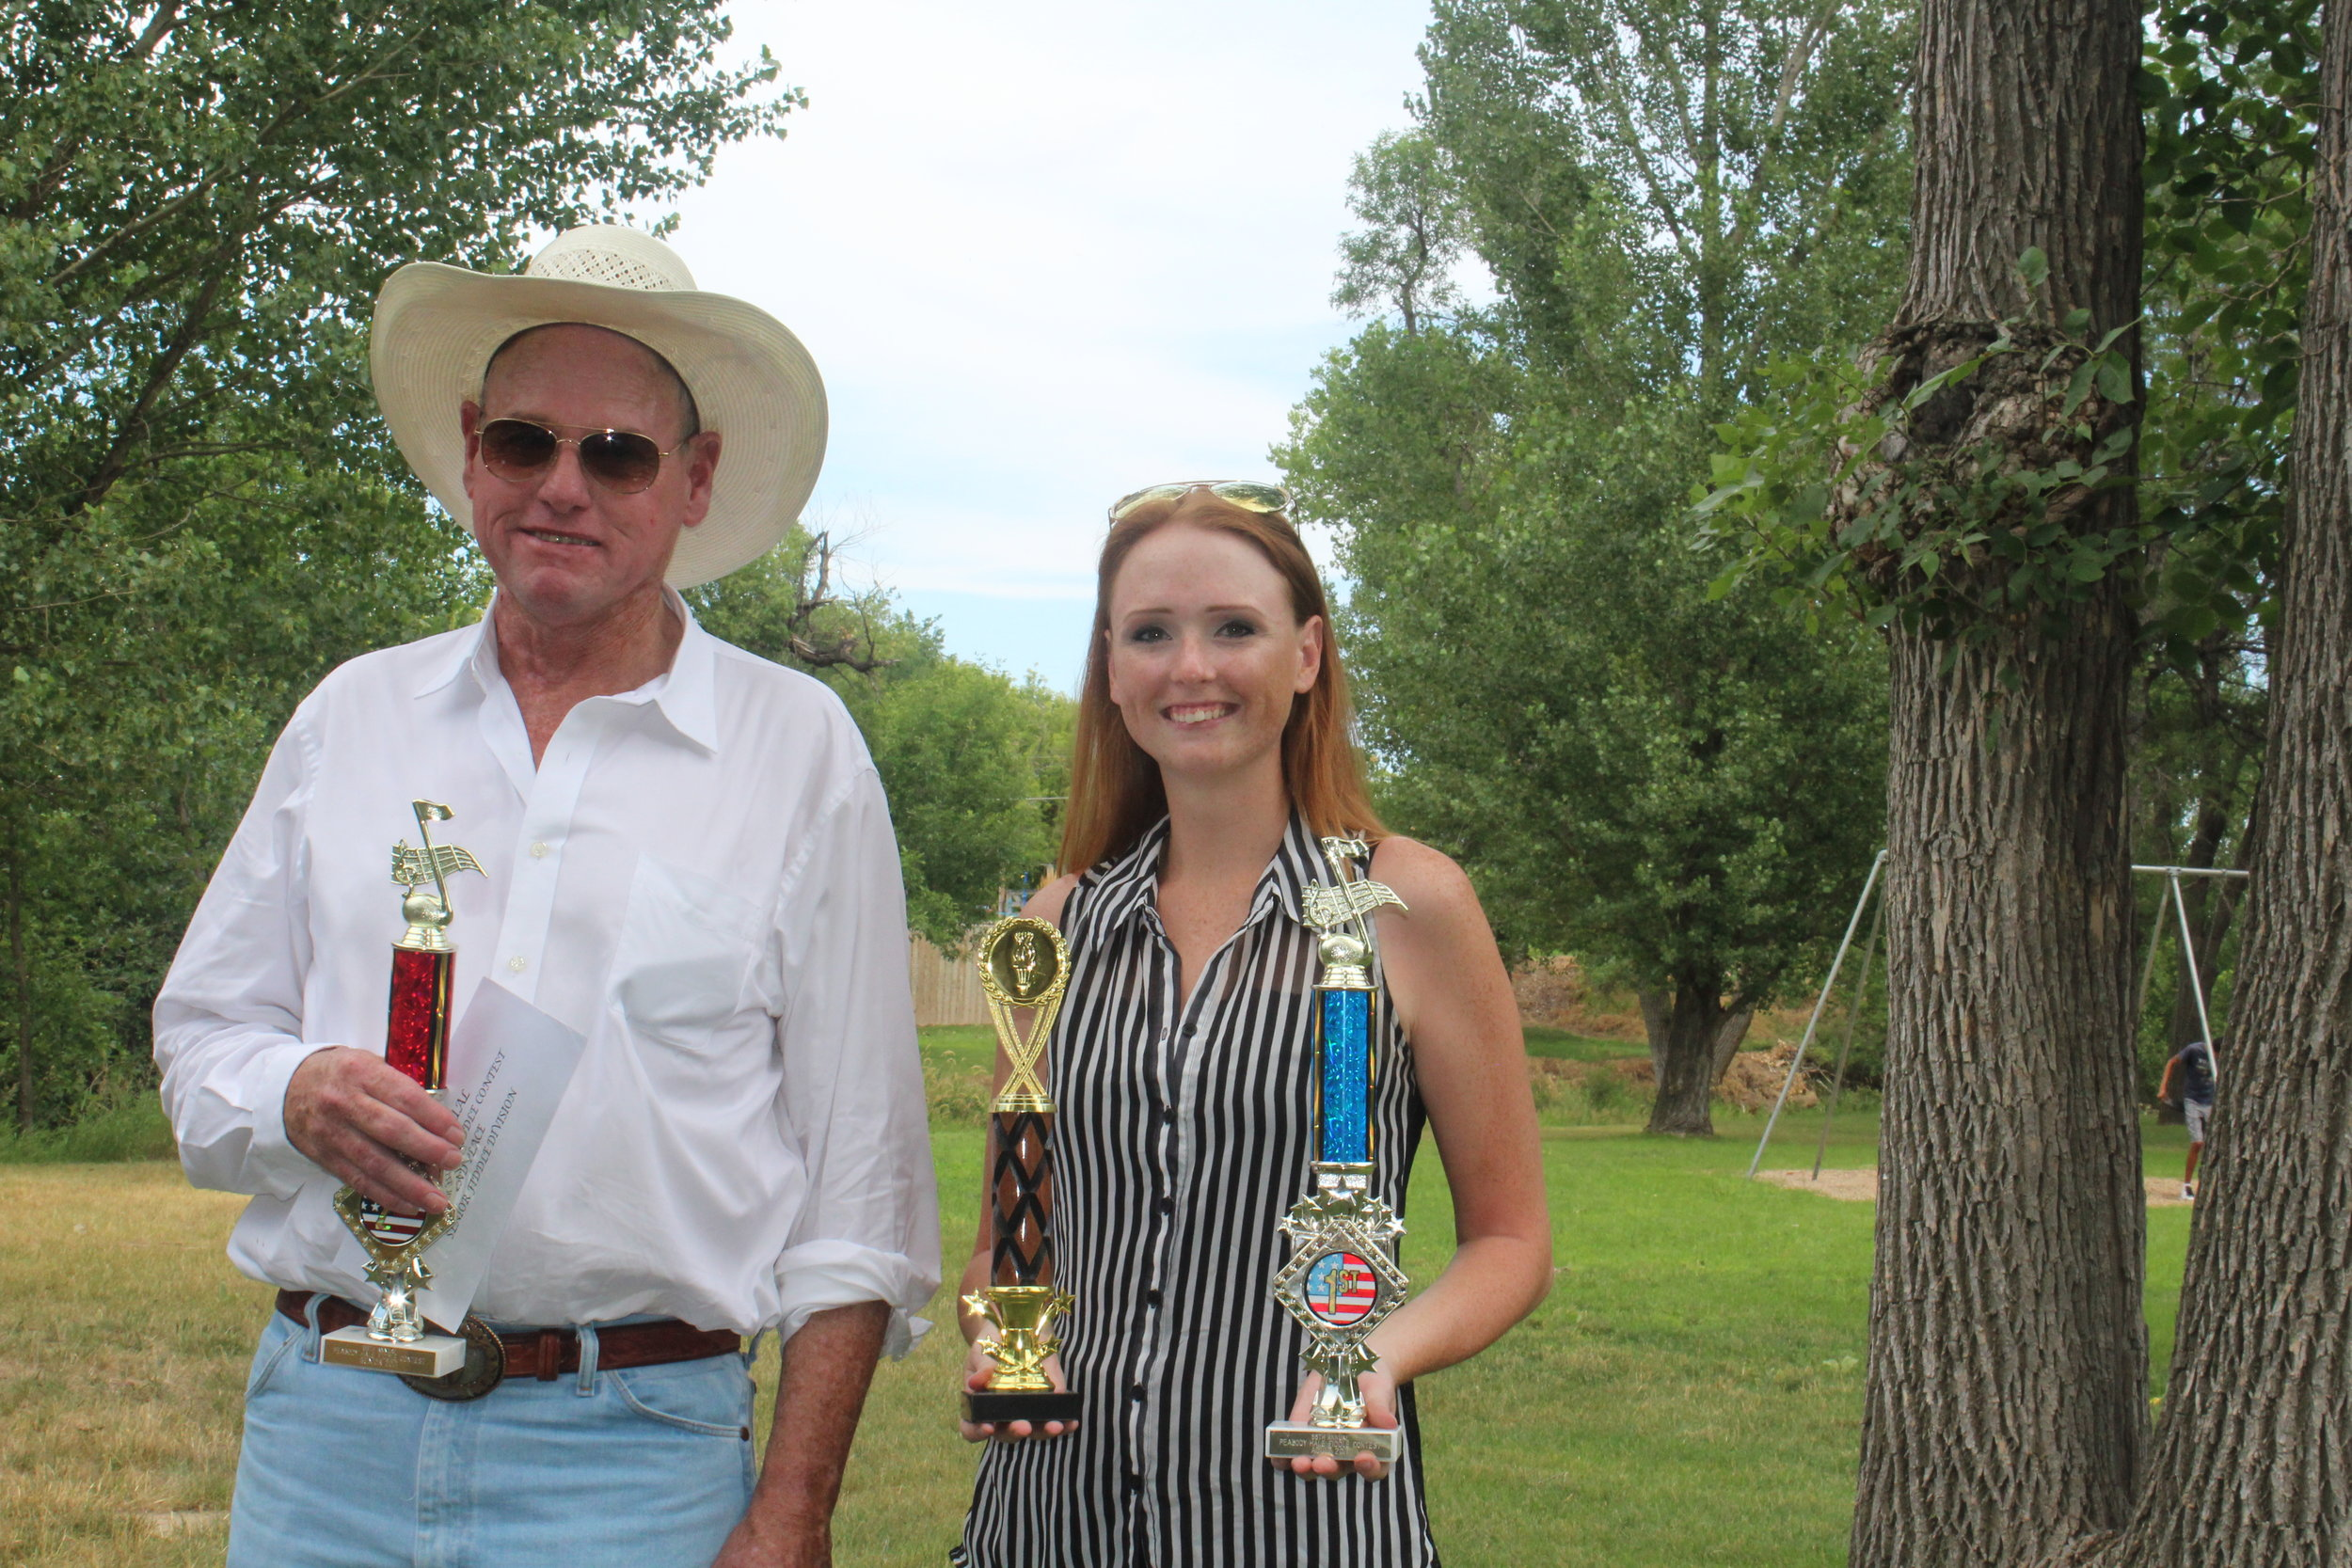 Crawford NE Fiddle Contest. Ronn got 2nd in his division. Abby got 3rd in Vocal and 1st on Fiddle in her division.